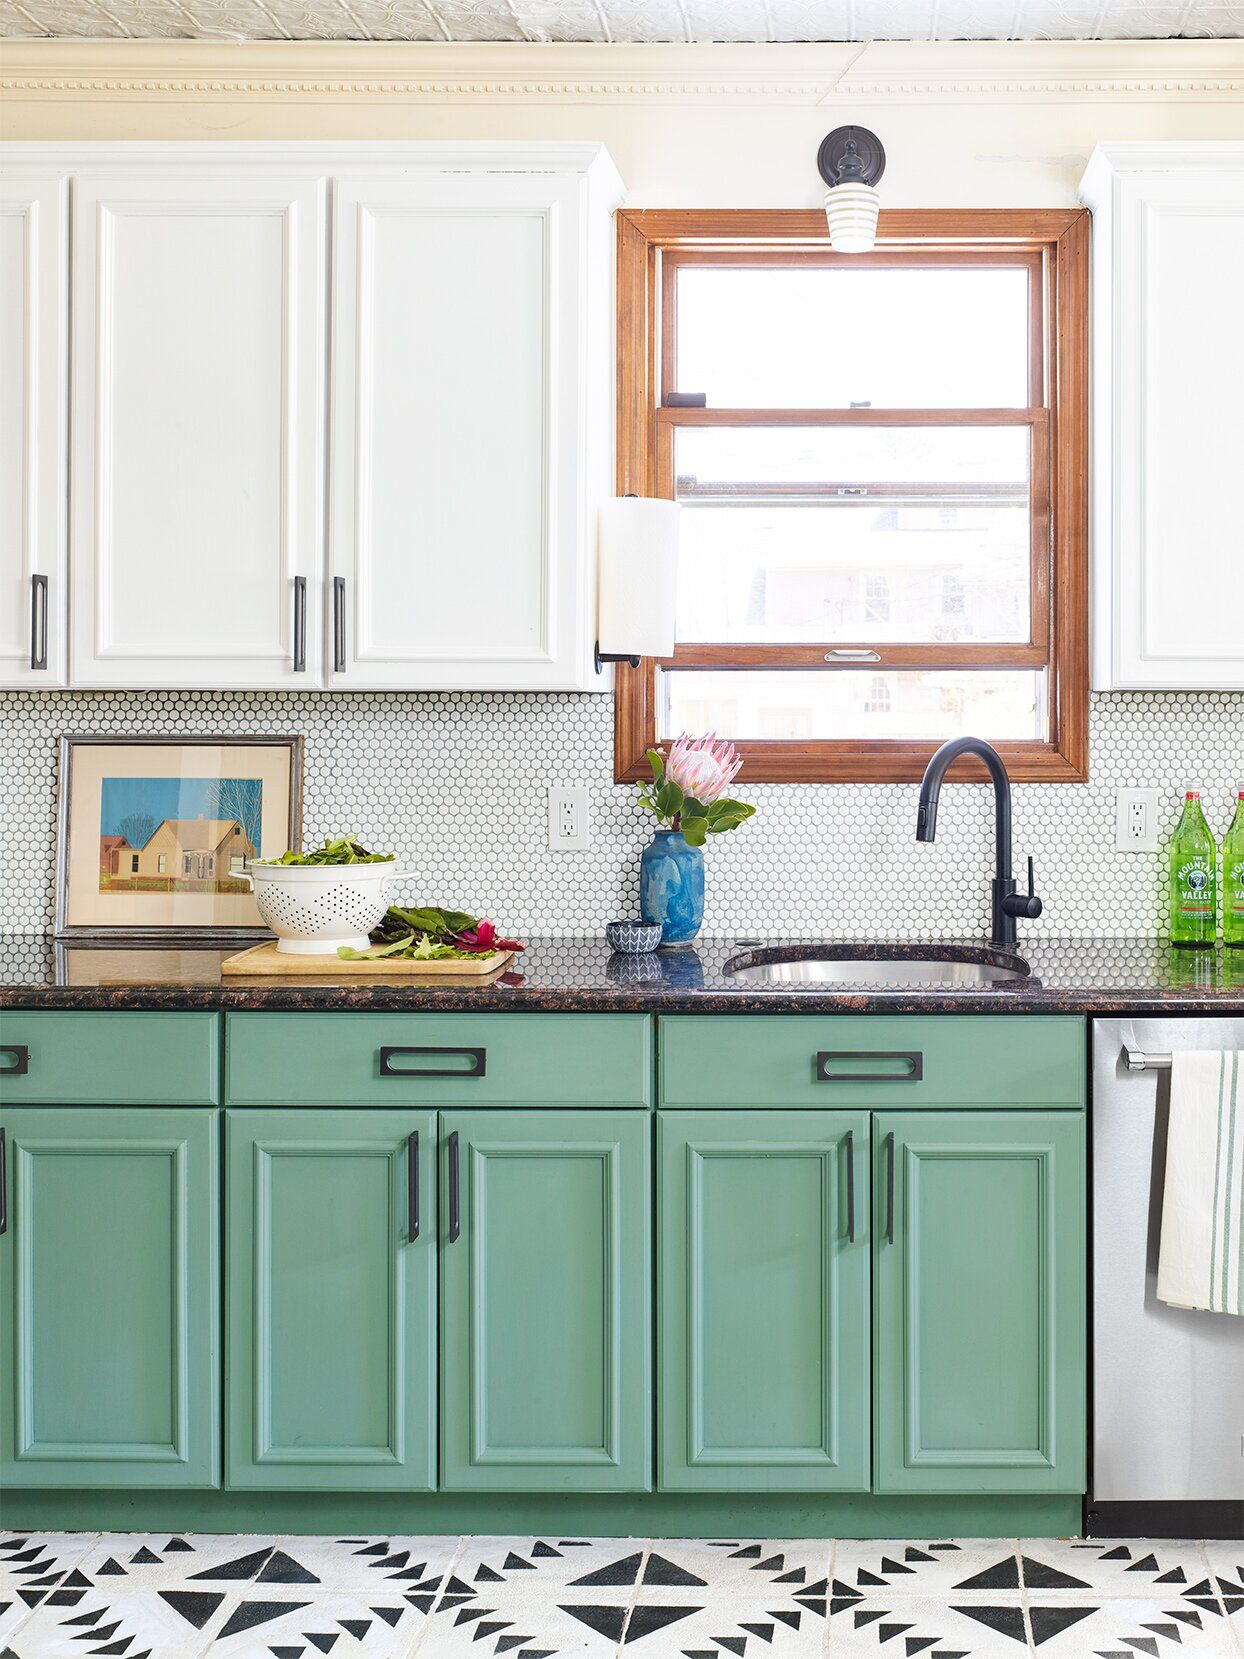 11 Best Green Paint Colors For Cabinetry According To Experts In 2020 Budget Kitchen Remodel Green Kitchen Kitchen Remodel